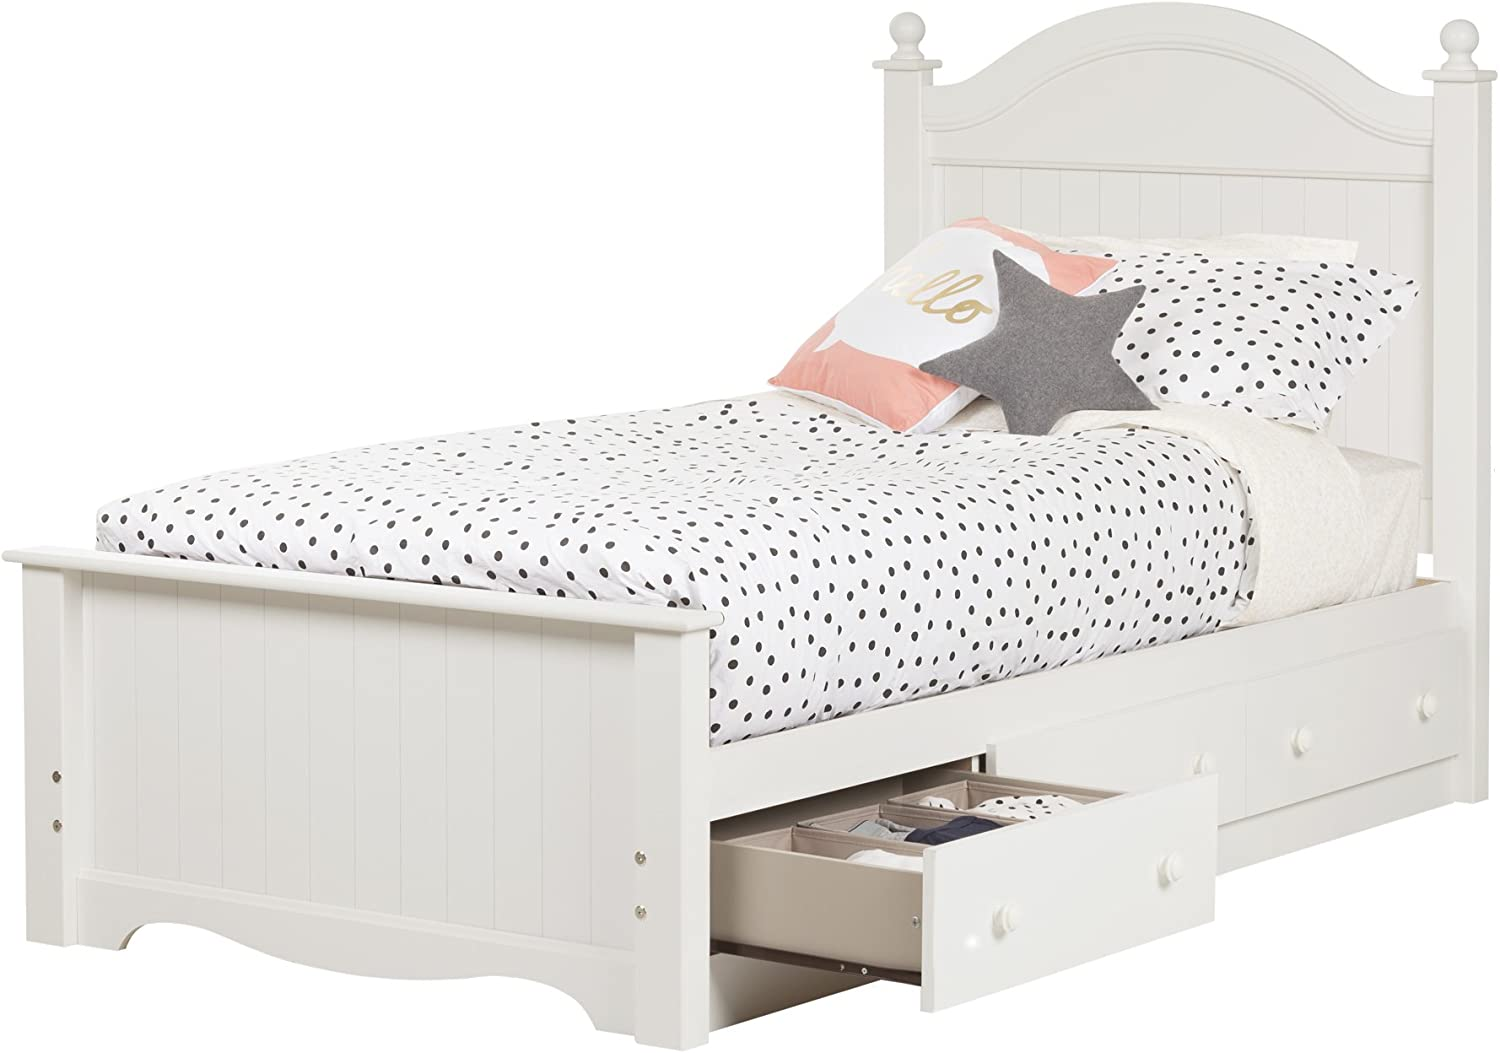 Pure White South Shore Furniture 10506 Savannah Twin Bed Set with 3 Drawers 39